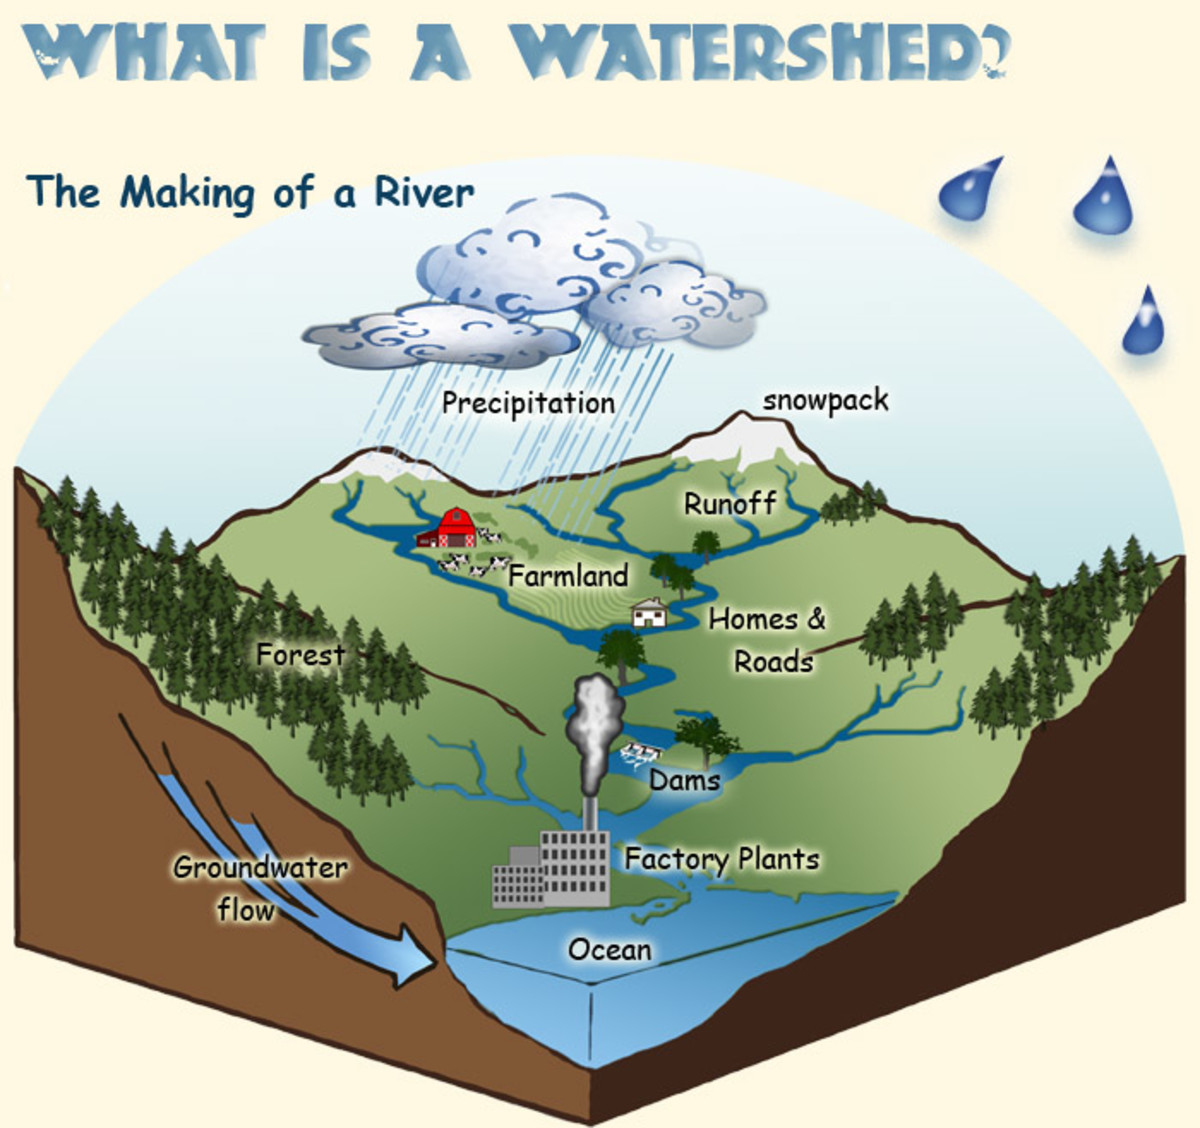 Graph of a simple, functional watershed. Good land use planners should have this memorized, so they know how to preserve the natural flow of water when they allocate land in their area.